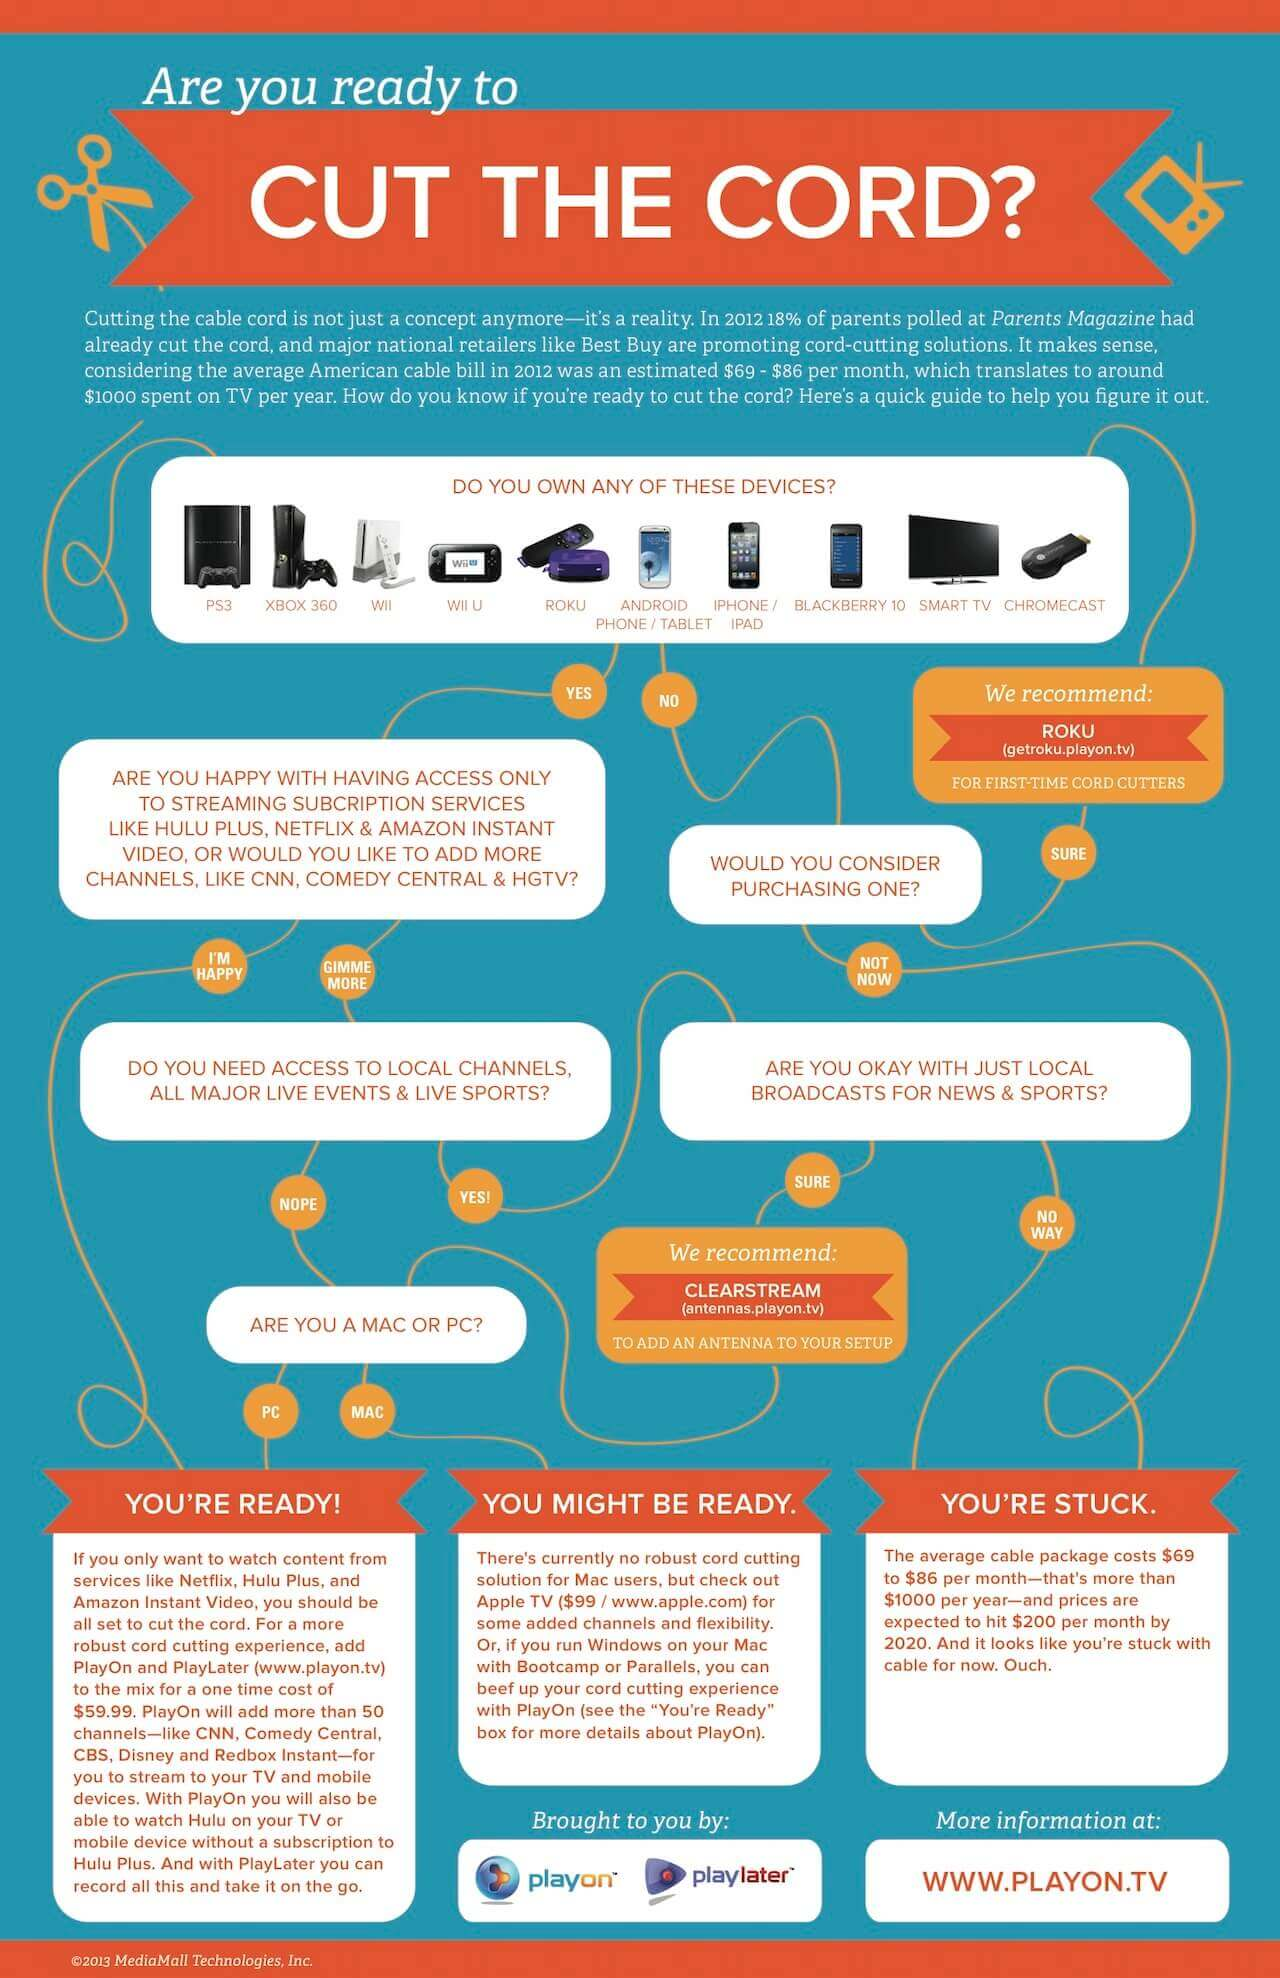 An infographic with a work flow which asks if you are prepared to cut the cord